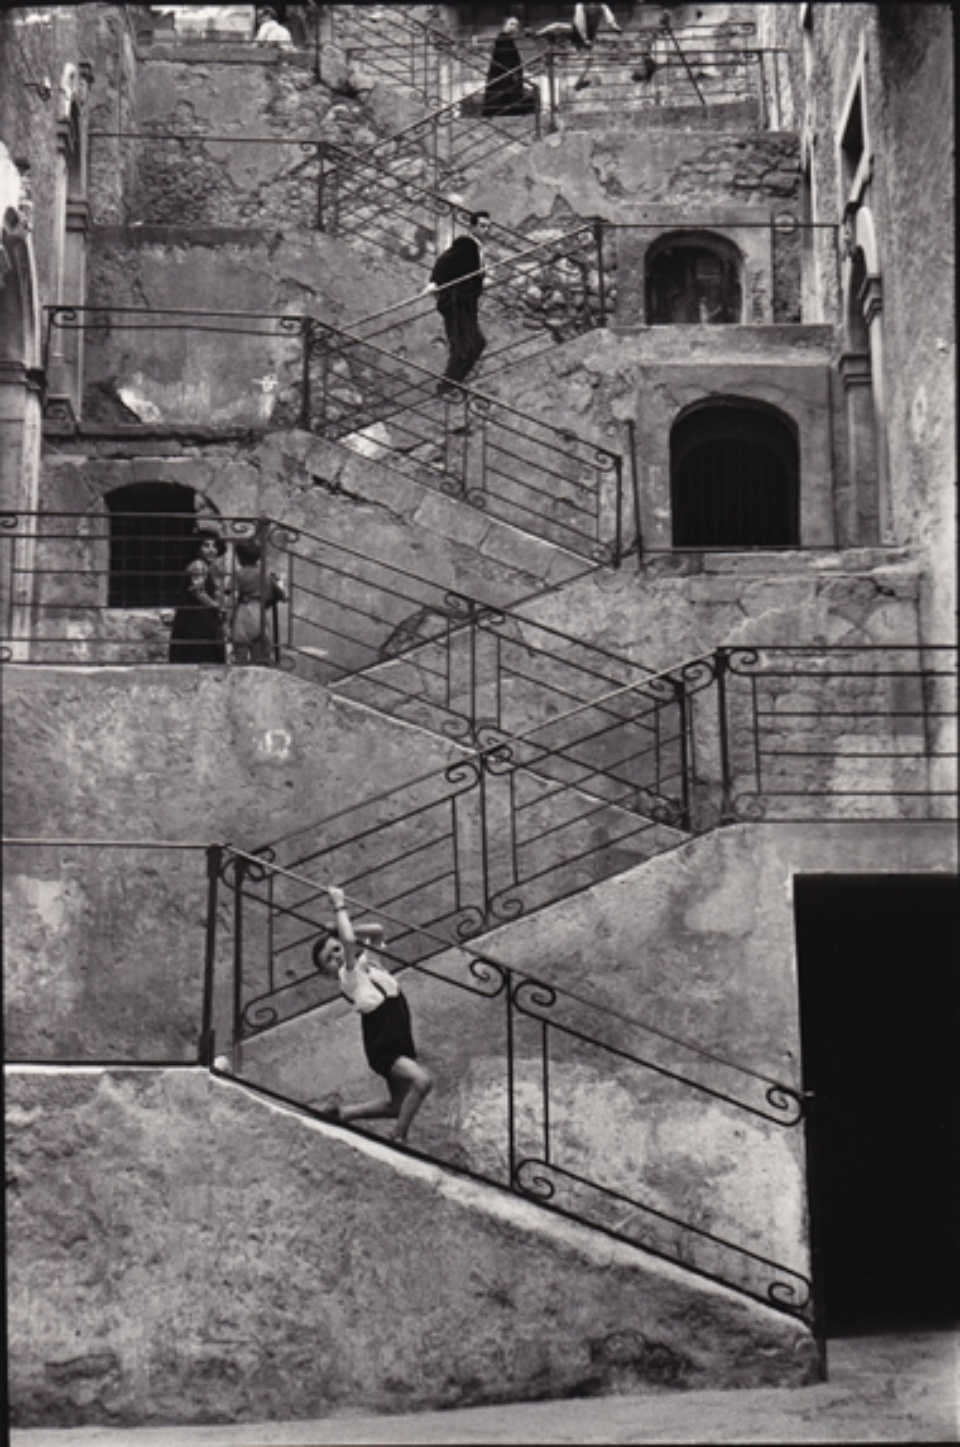 René Burri Leonforte Sicily, Italy, 1956 Signed, titled and dated on verso Gelatin silver print, printed later